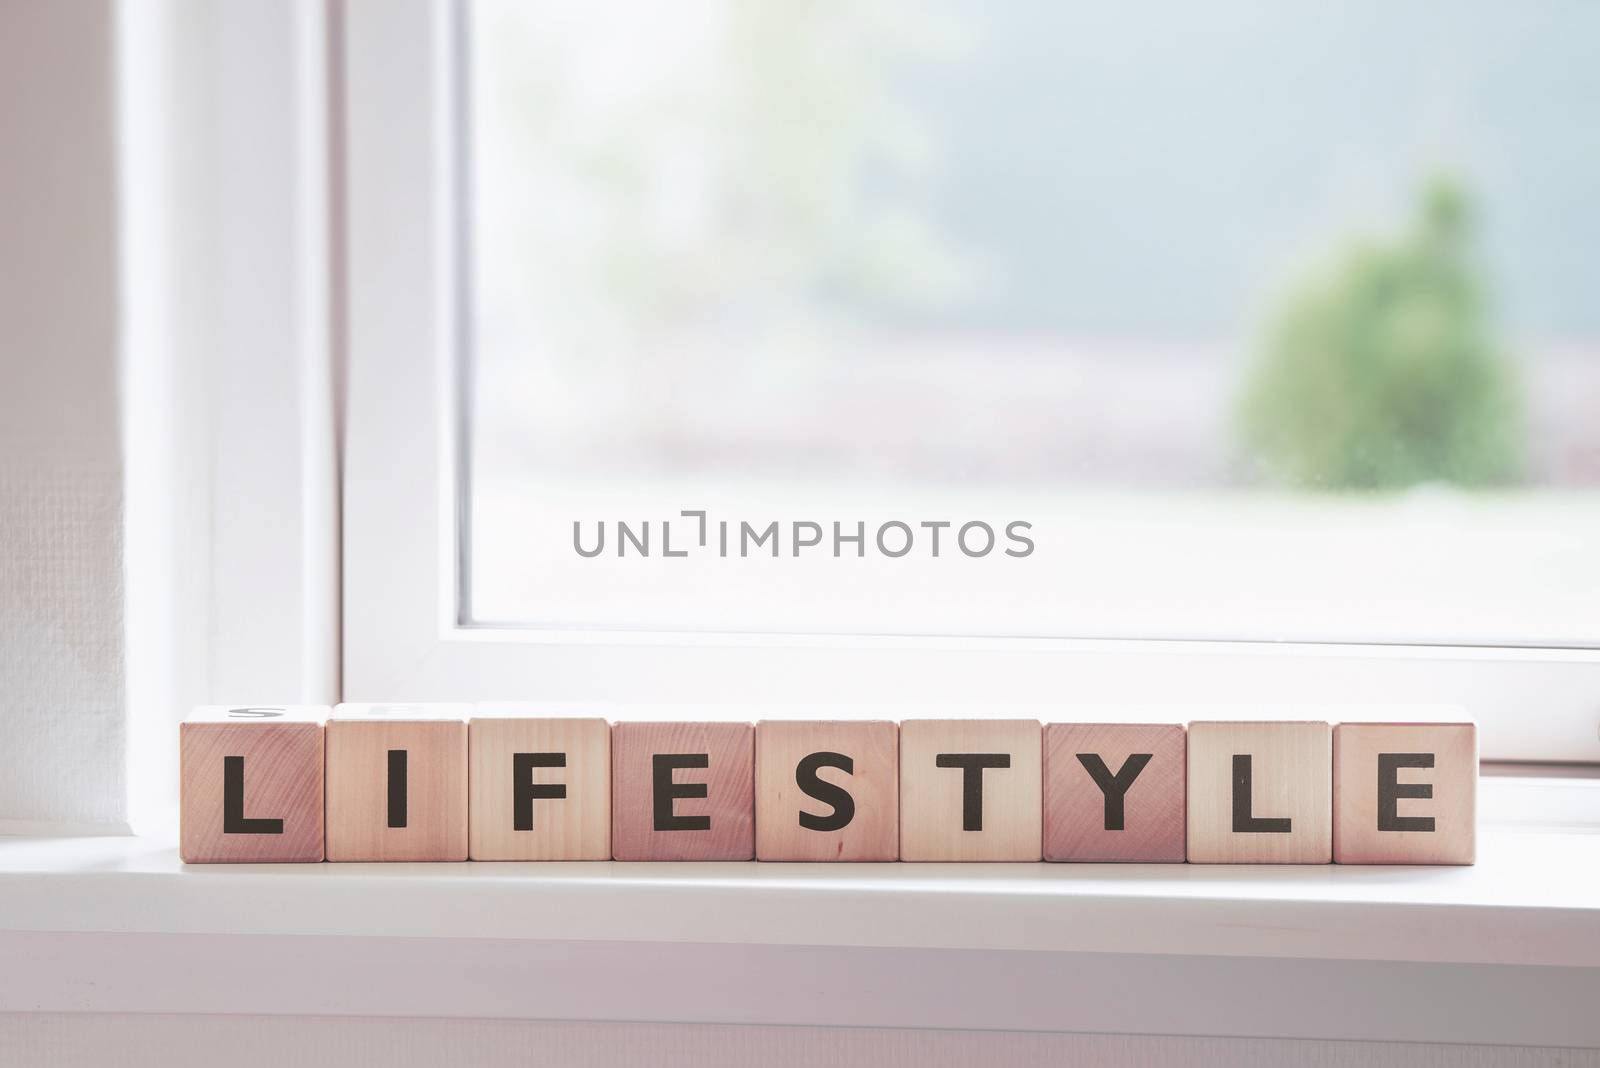 Lifestyle sign in a window in a bright room